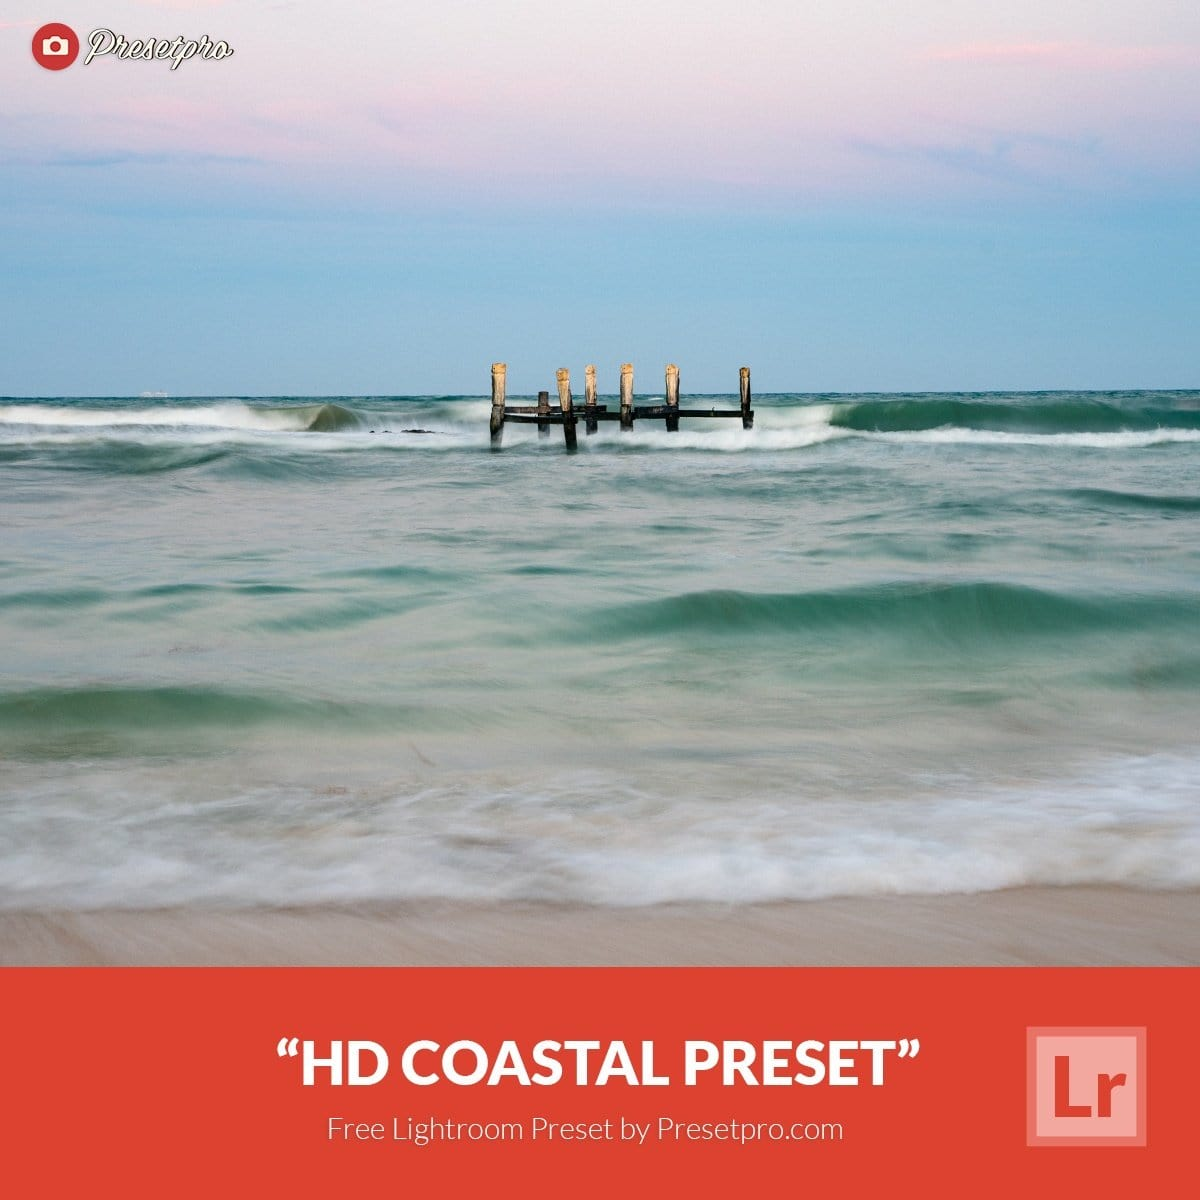 Free-Lightroom-Preset-HD-Coastal-Presetpro.com